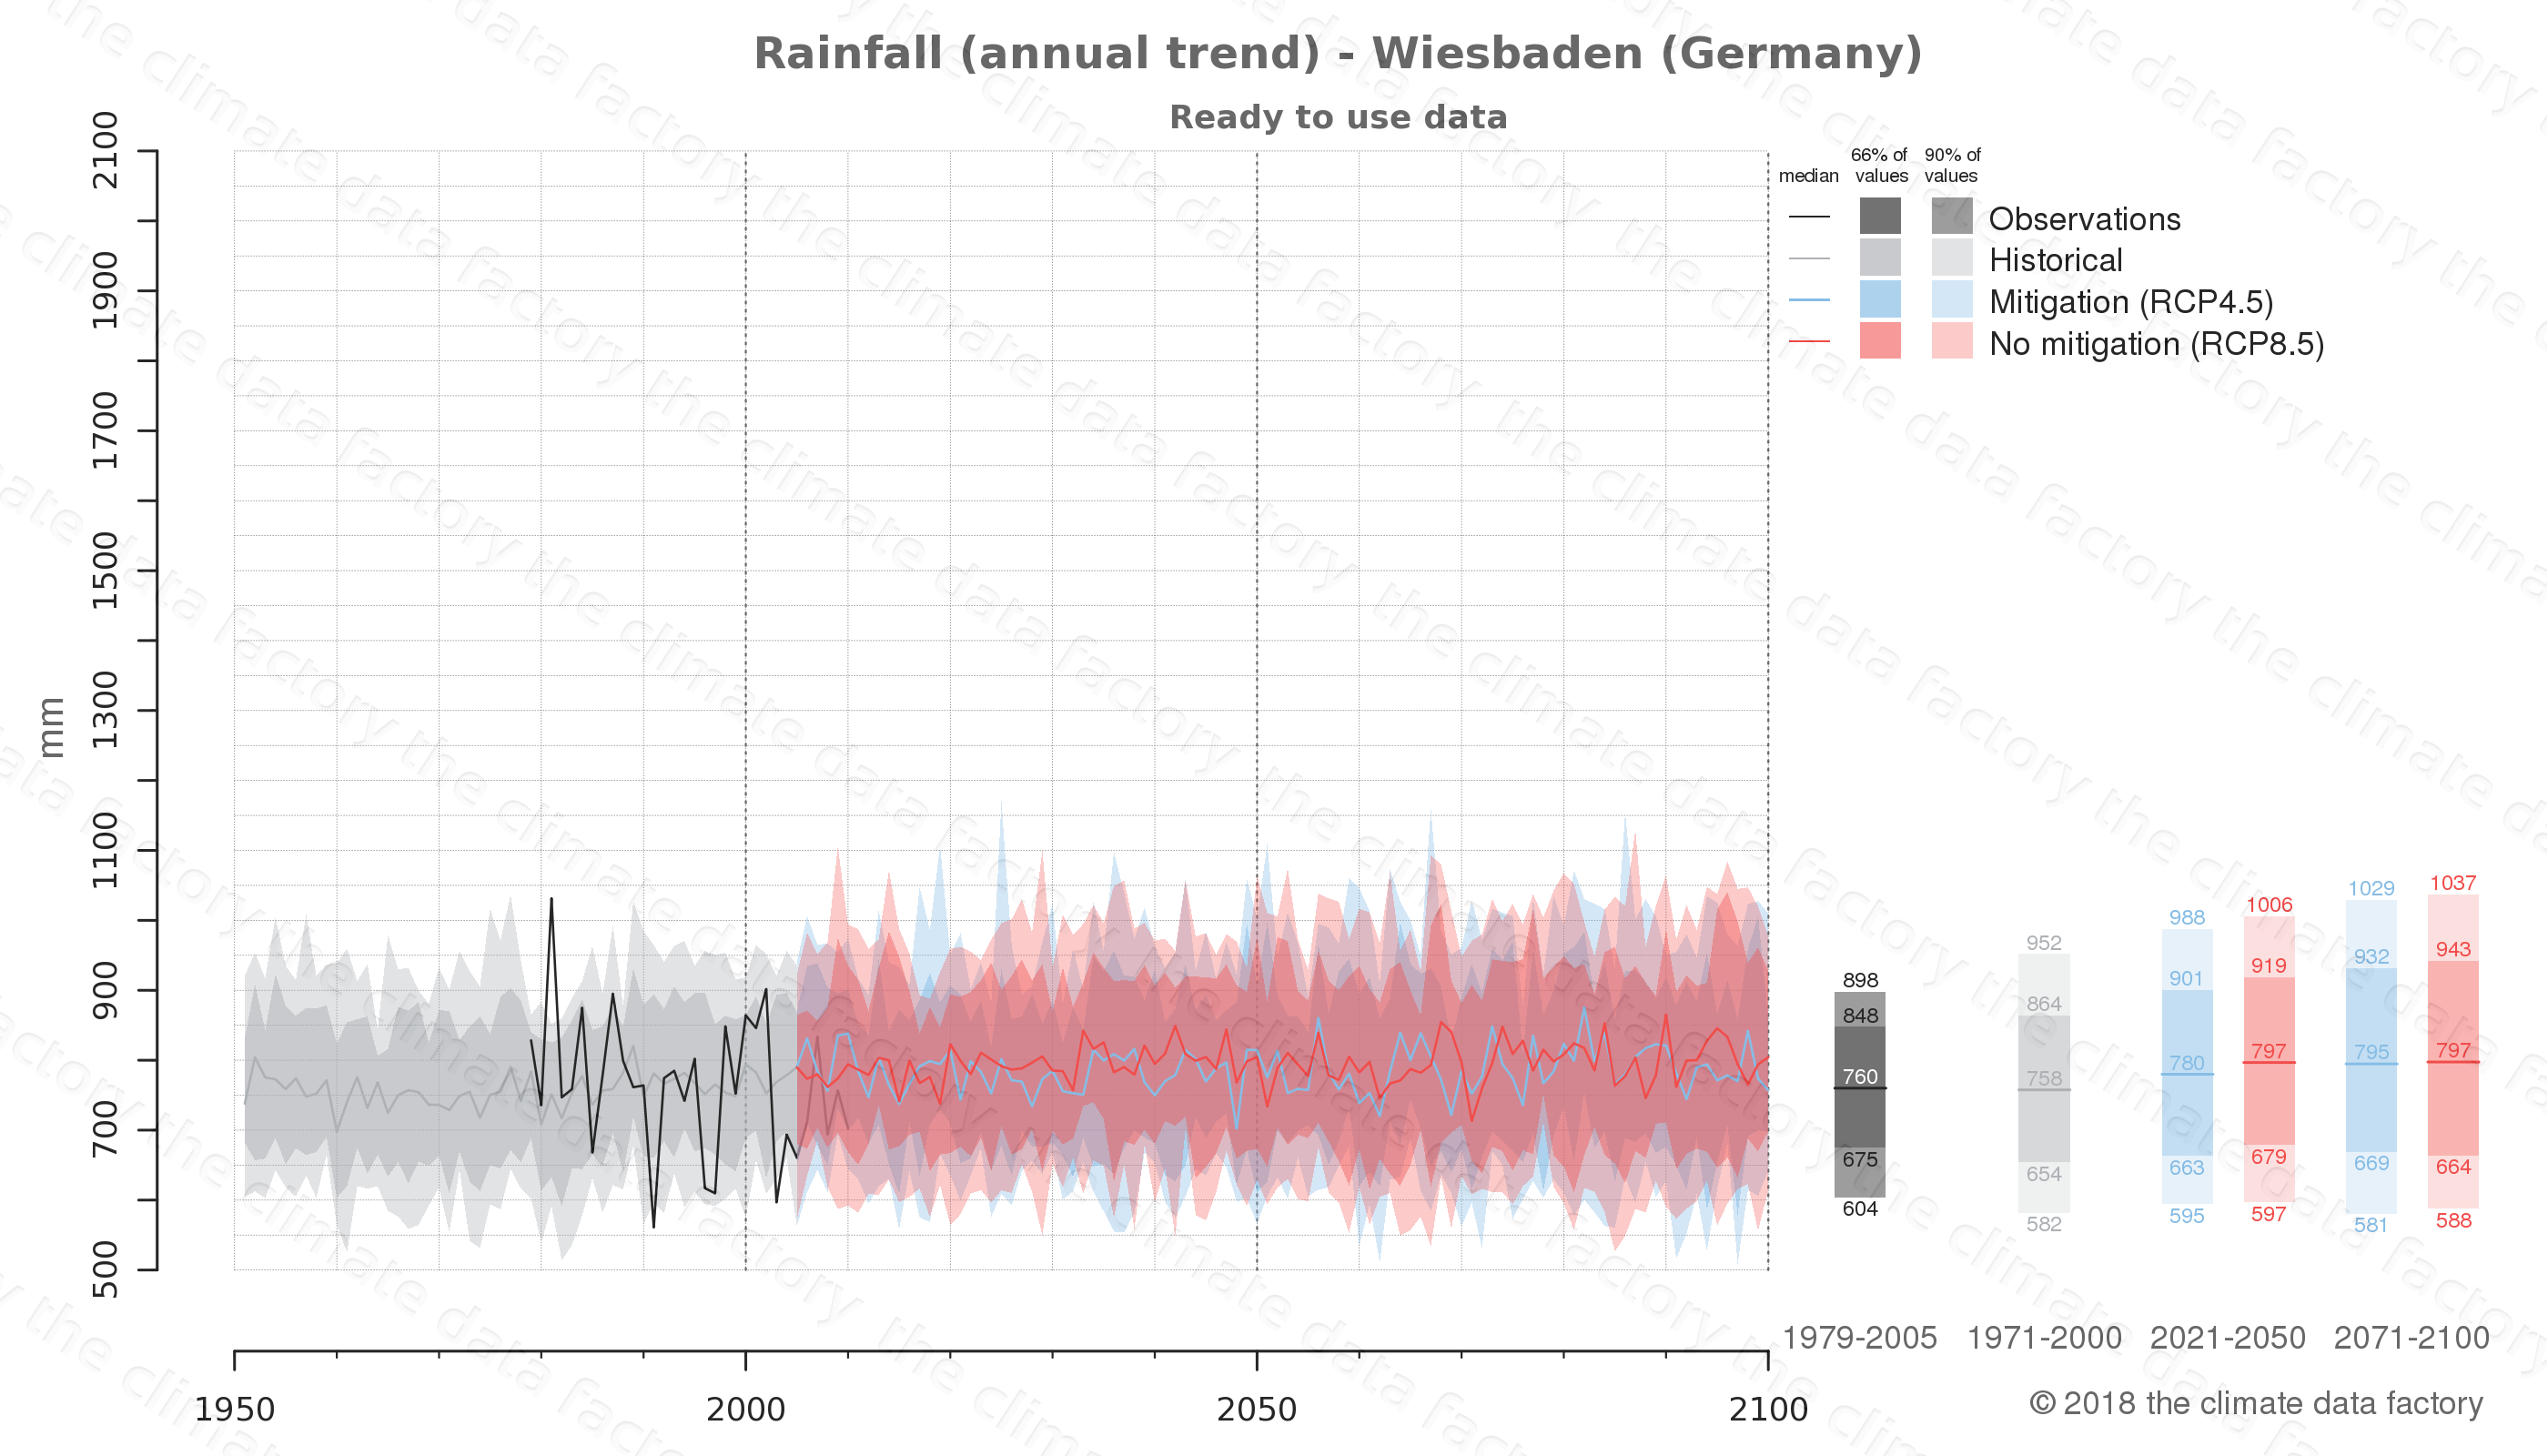 climate change data policy adaptation climate graph city data rainfall wiesbaden germany